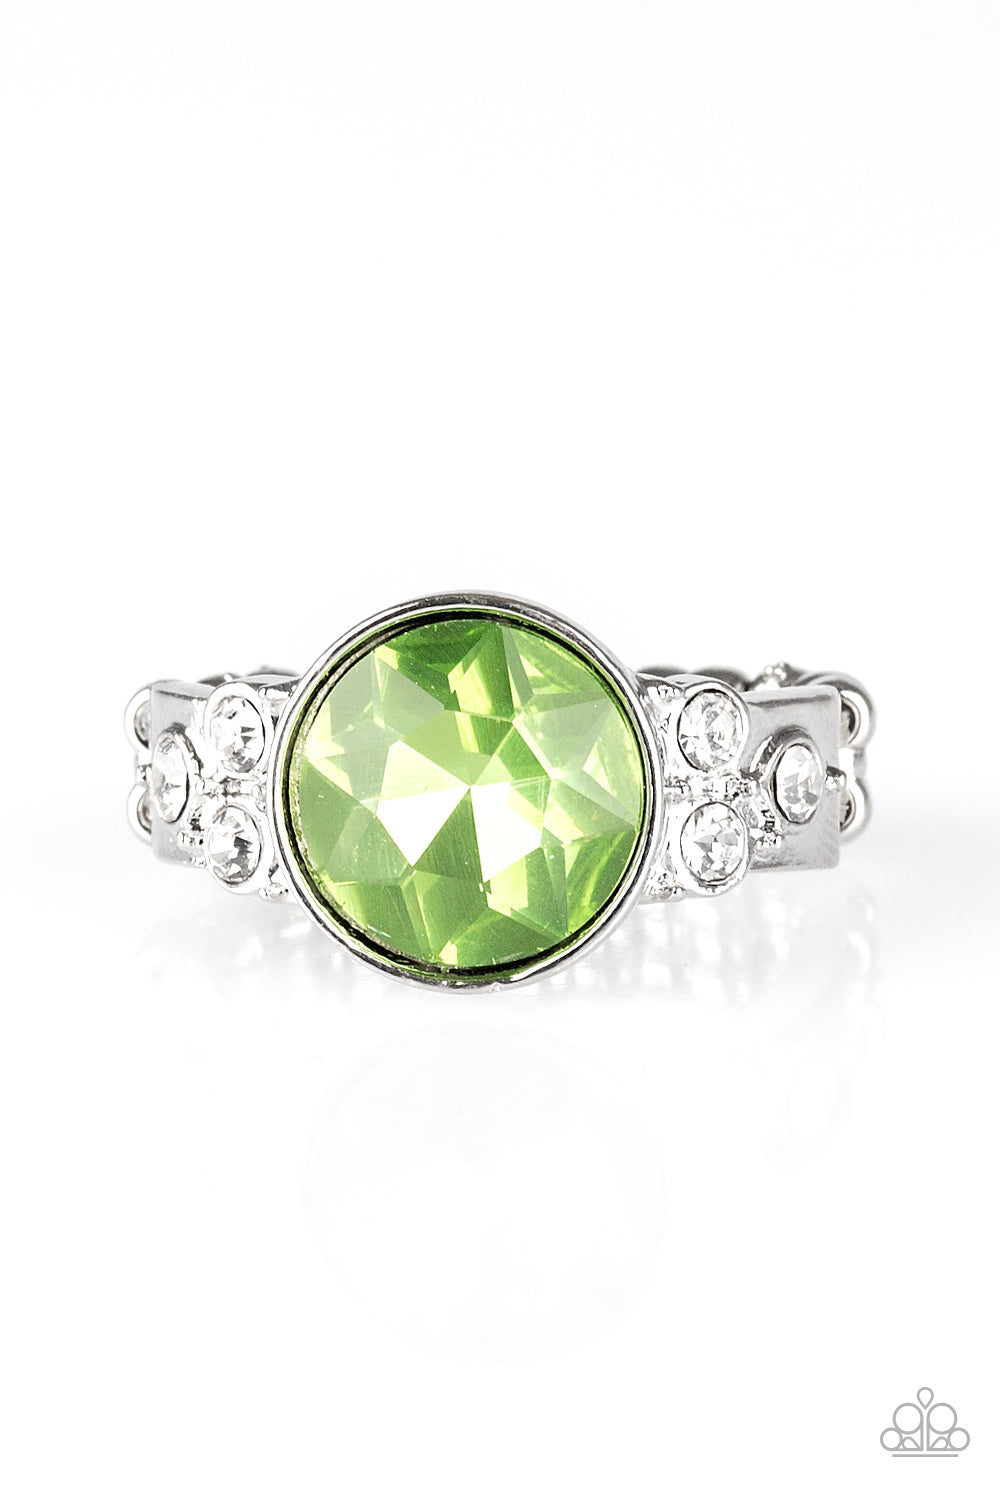 Paparazzi Ring  - Poshly Pampered - Green